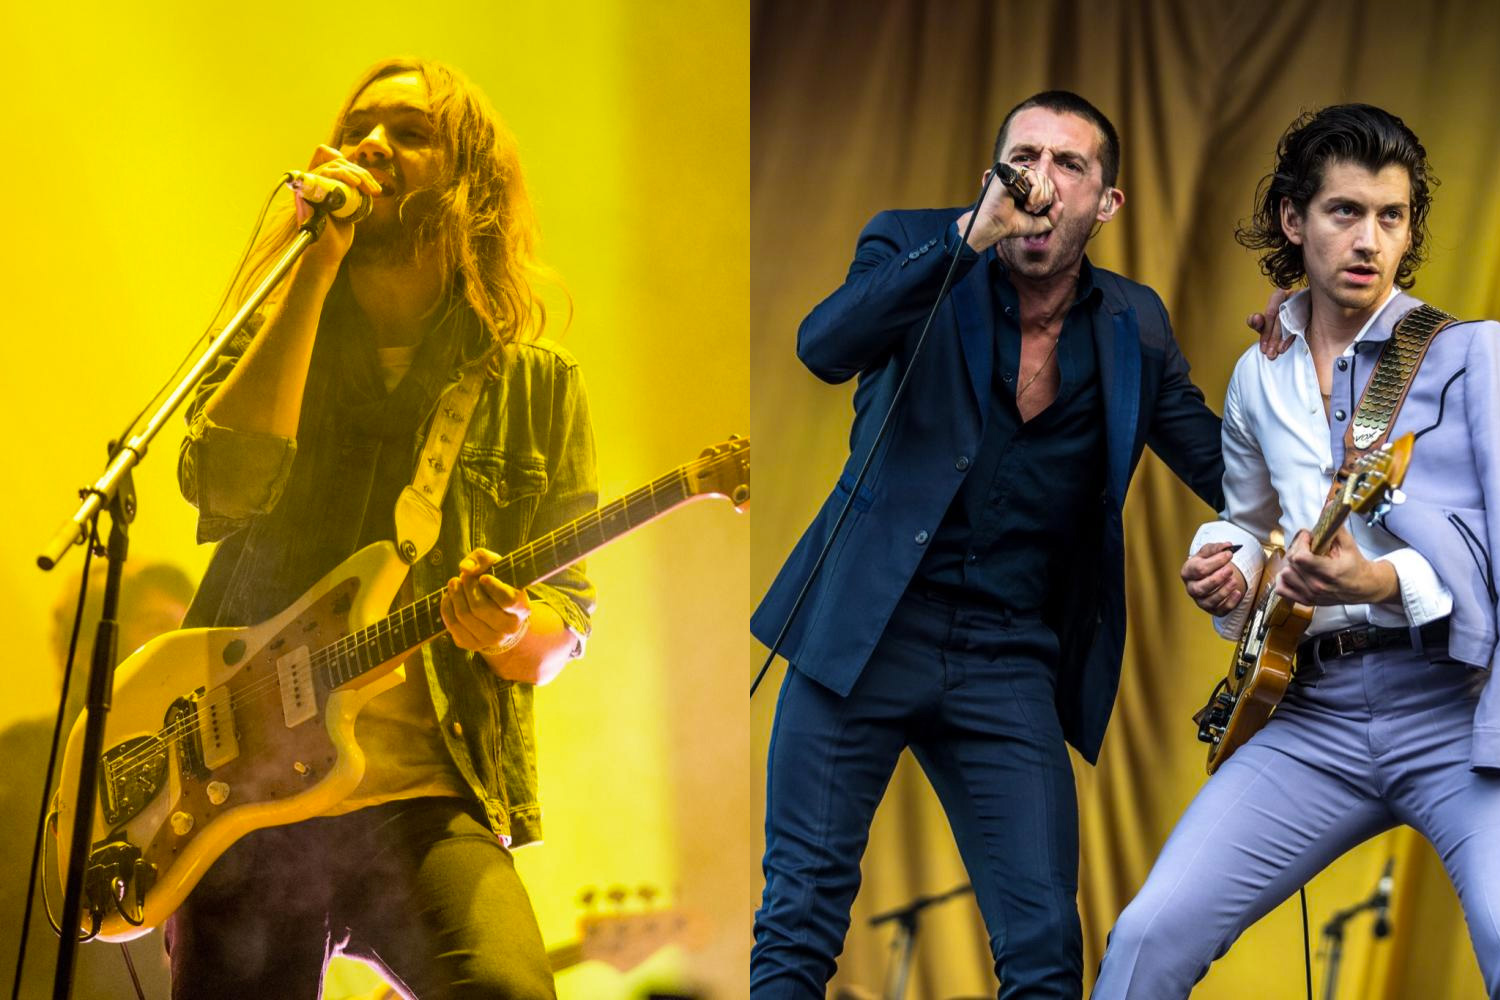 Kevin Parker of Tame Impala talks that stormy tribute song by The Last Shadow Puppets